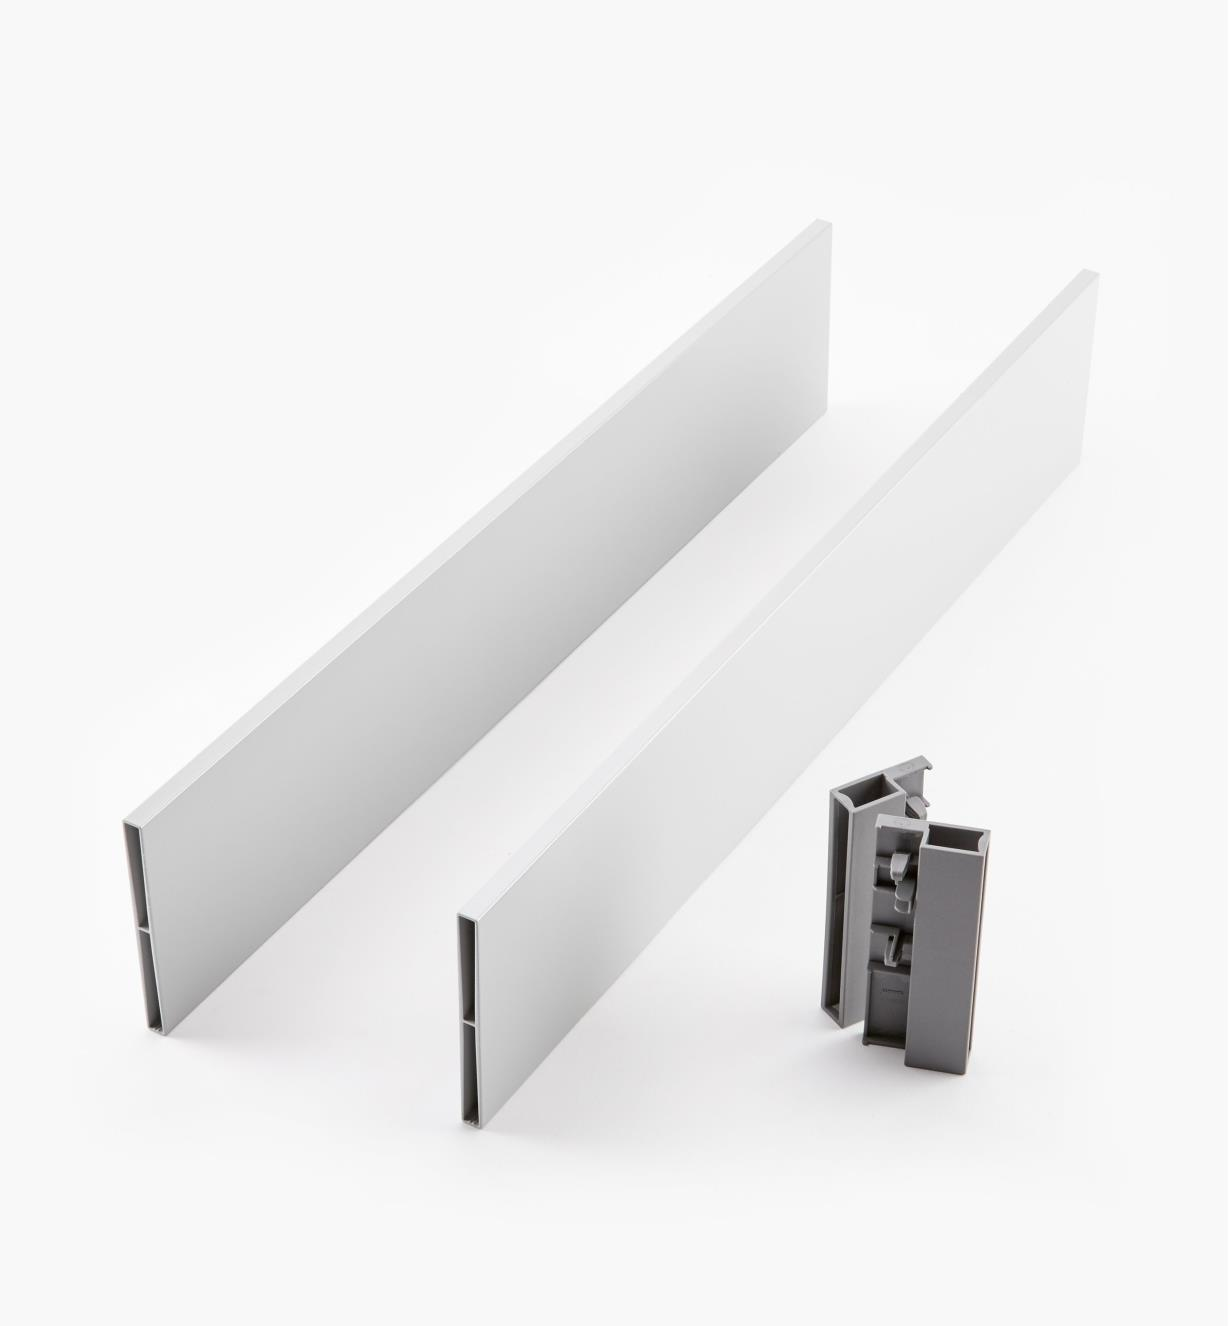 02K2852 - Steel Insert Panels for Blum Tandembox Antaro Soft-Close Type D 500mm Drawer Kit